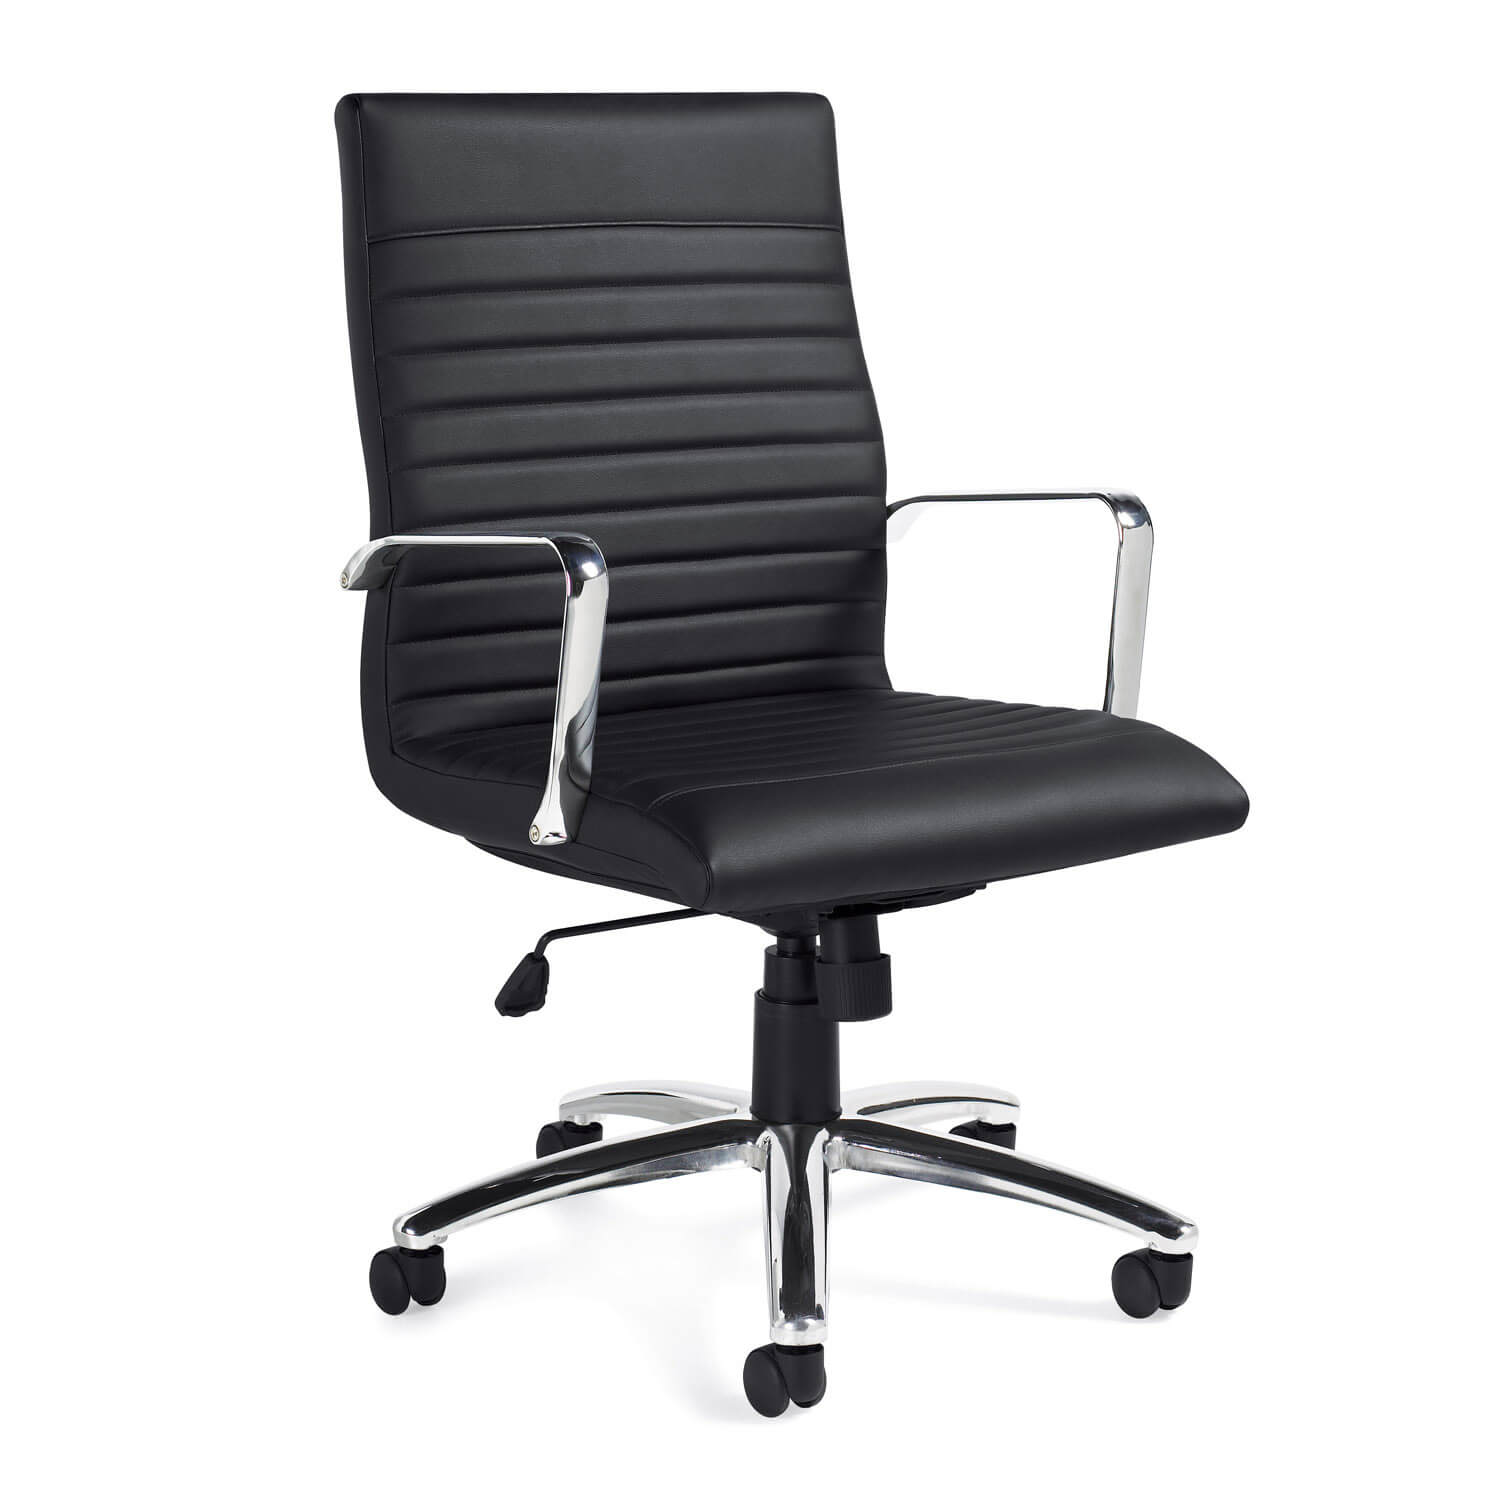 chairs-for-office-executive-chair.jpg